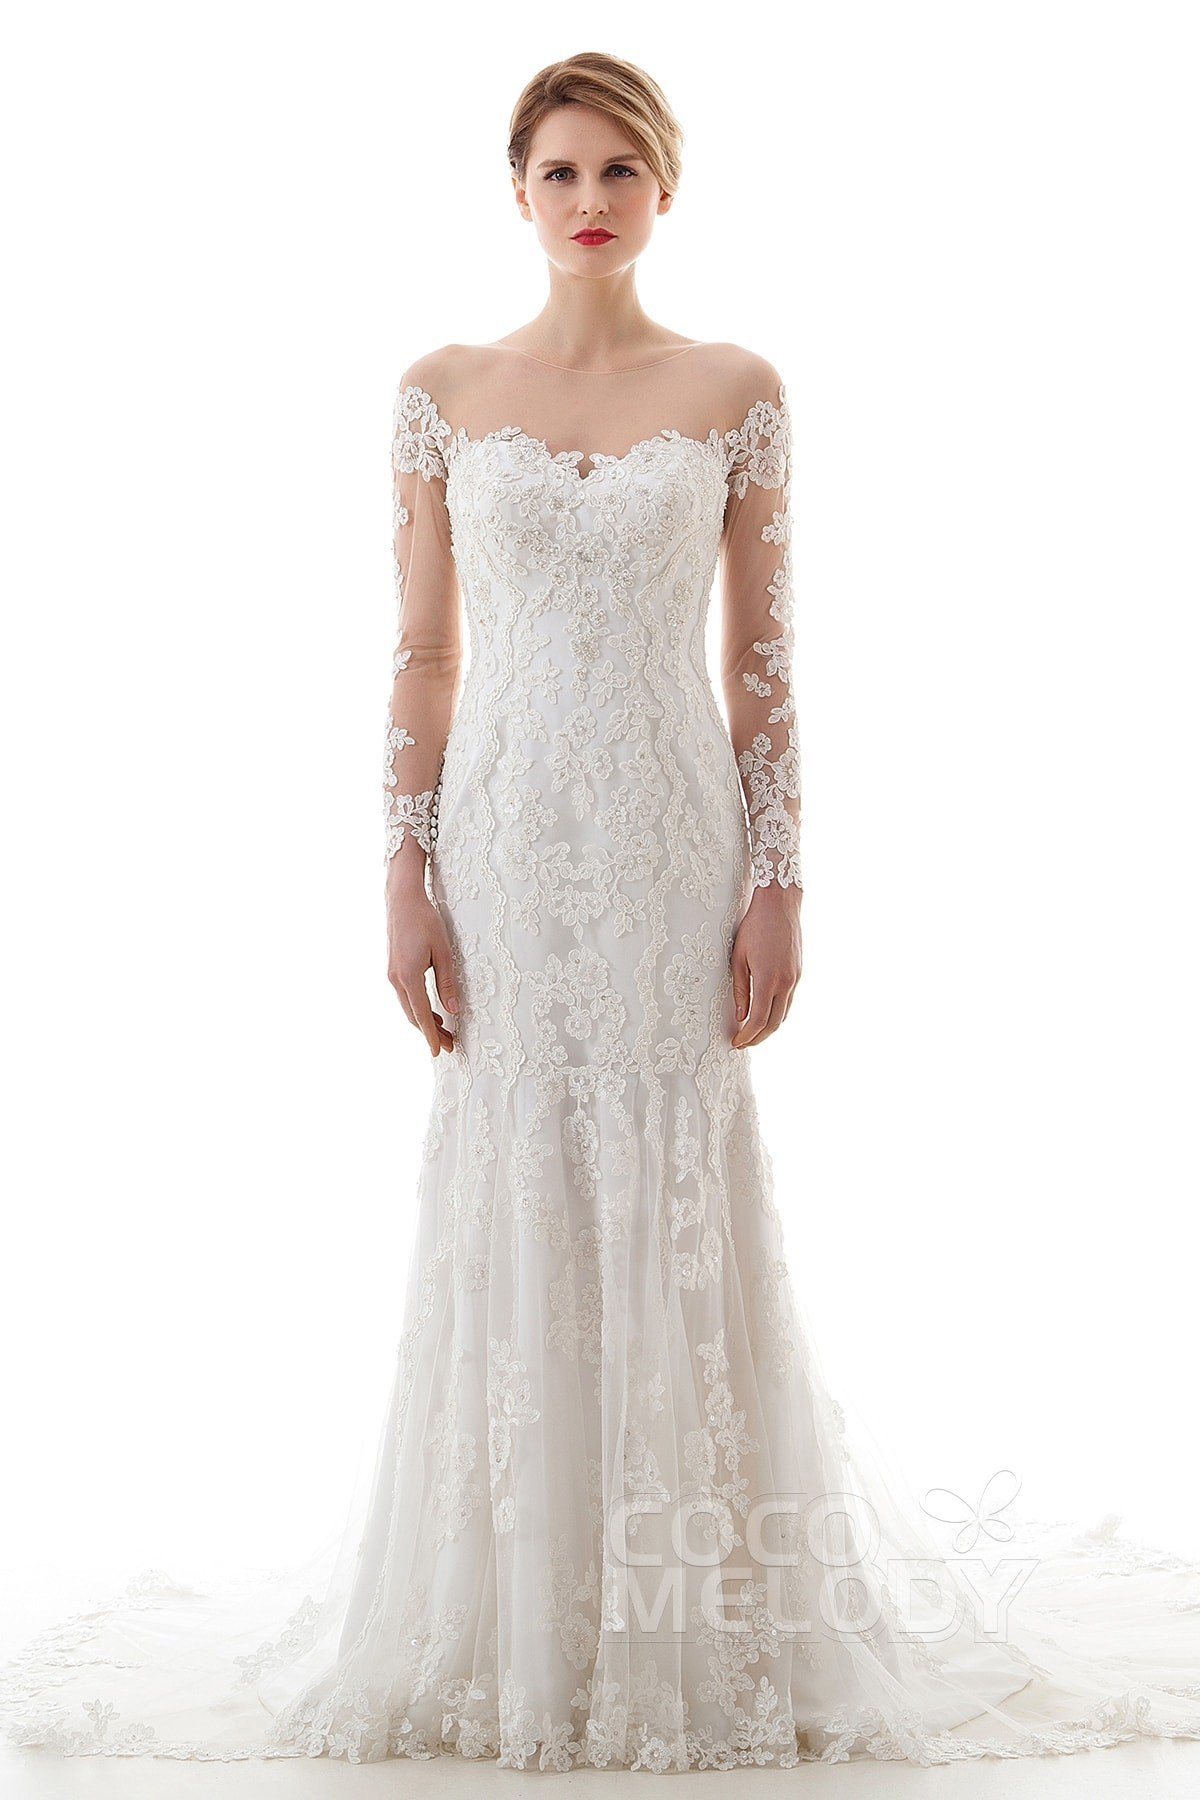 Charming Trumpet-Mermaid Illusion Dropped Court Train Lace and Tulle Ivory Long  Sleeve Buttons Wedding Dress with Appliques and Beading LD4620 78c040d96